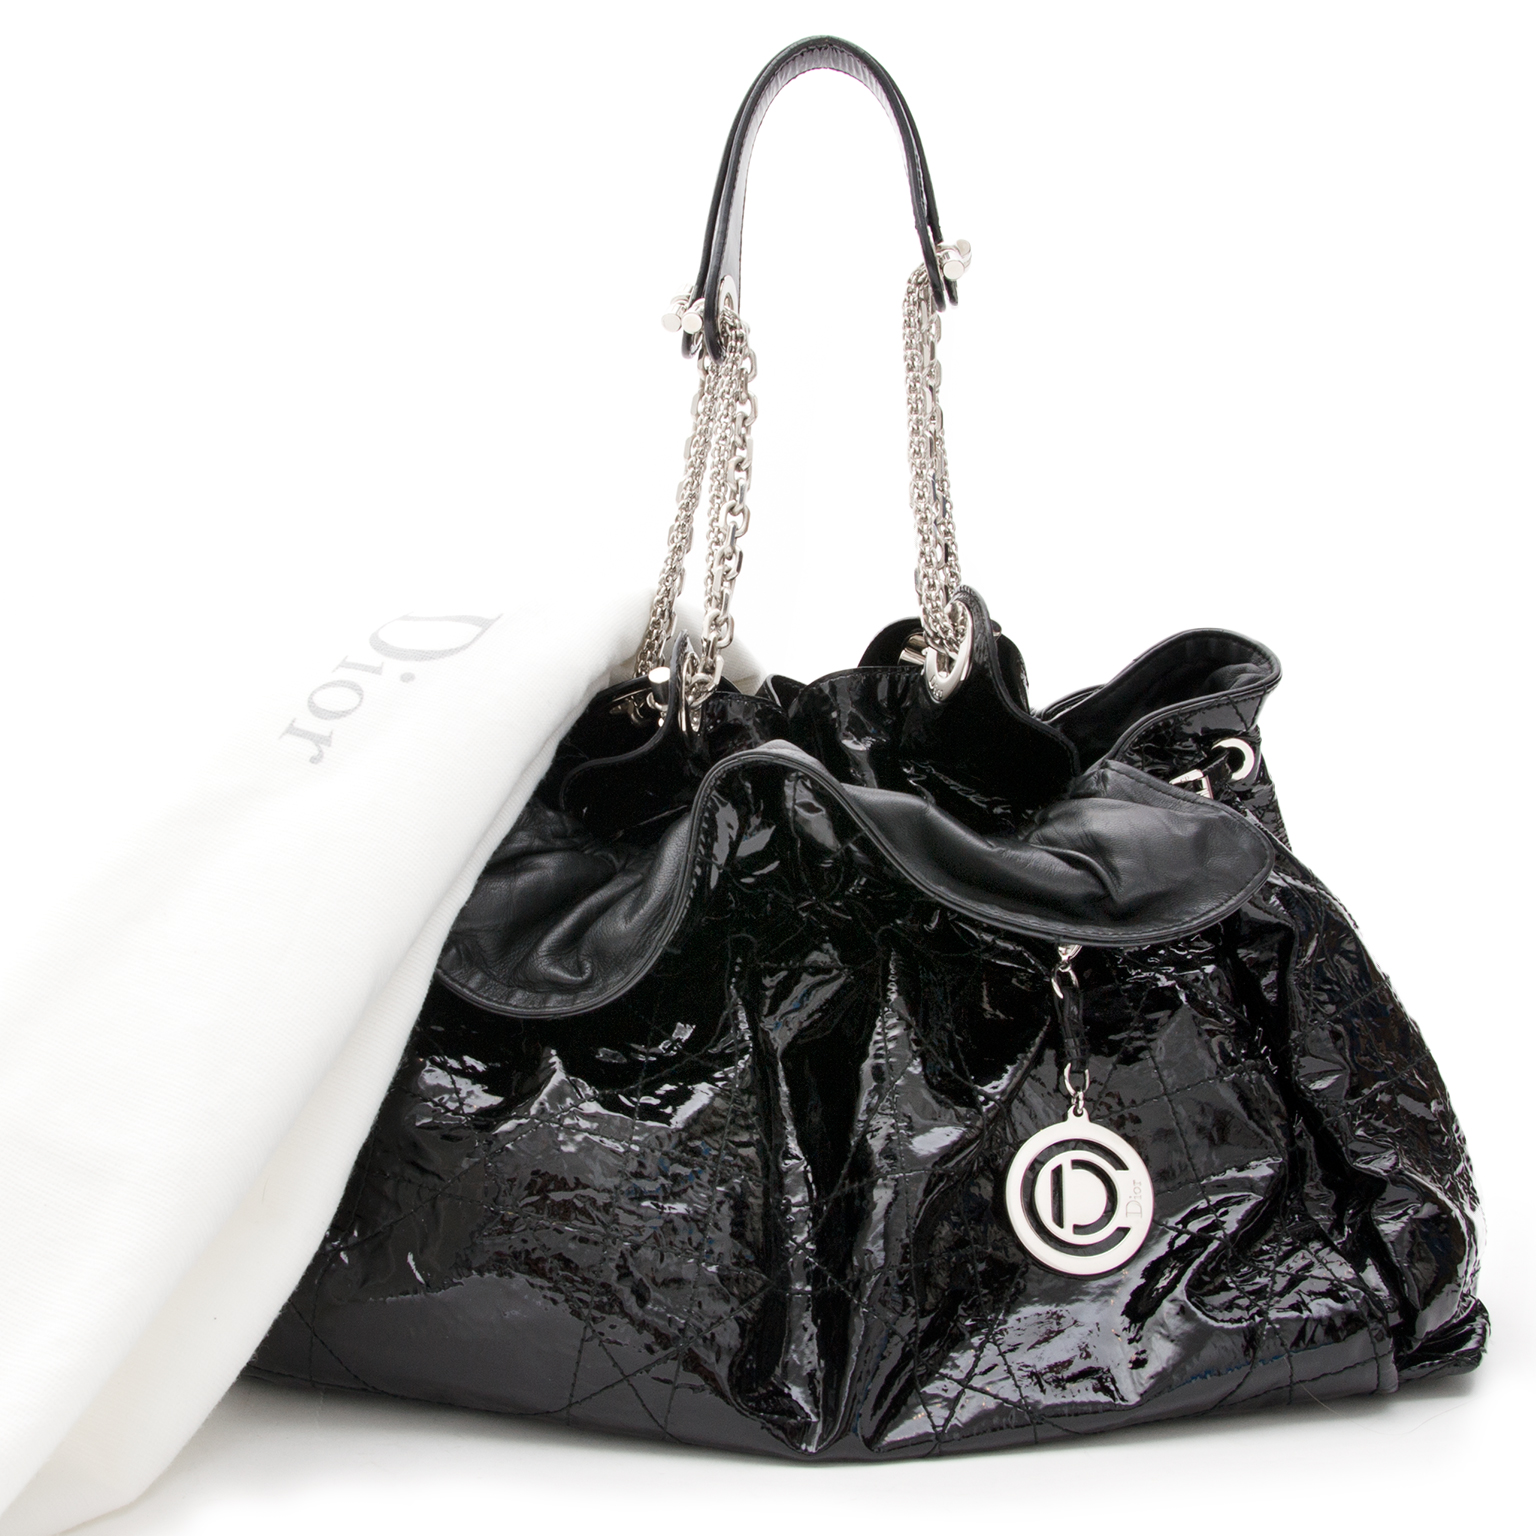 Christian Dior Cannage Hobo Patent Black . Buy your designer bags safe and secure at the webshop Labellov.com.